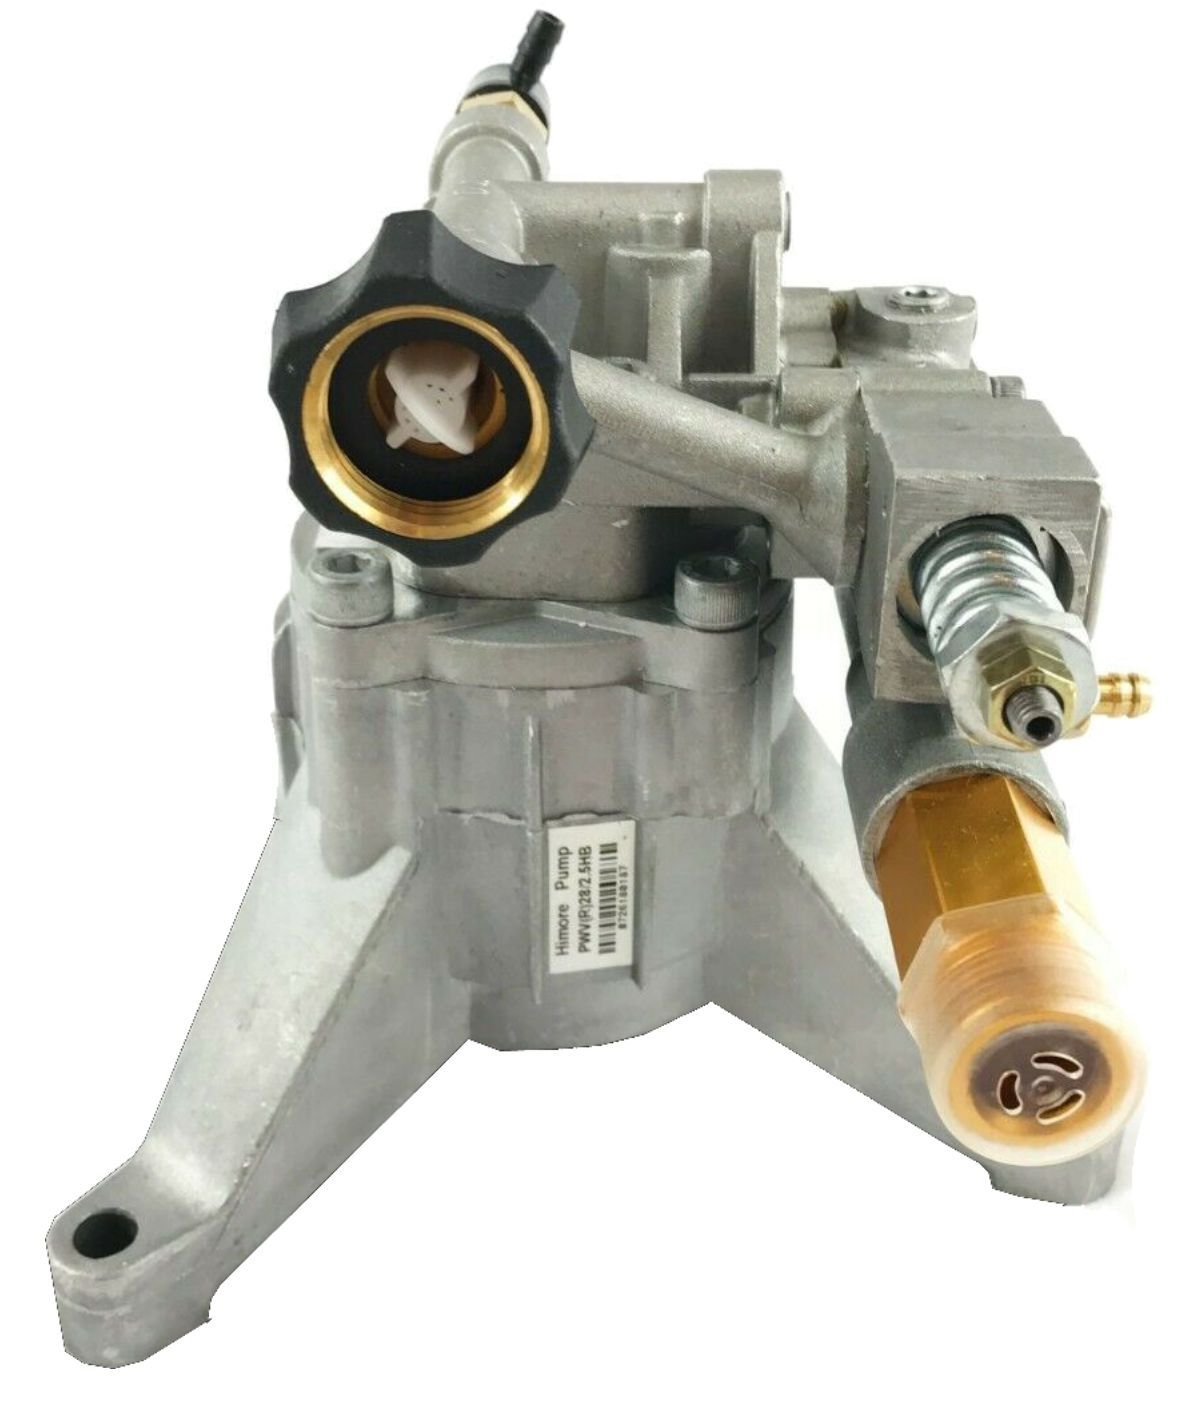 2700 PSI PRESSURE WASHER WATER PUMP fit Sears Craftsman 020353-0 020367-1 - AE-Power